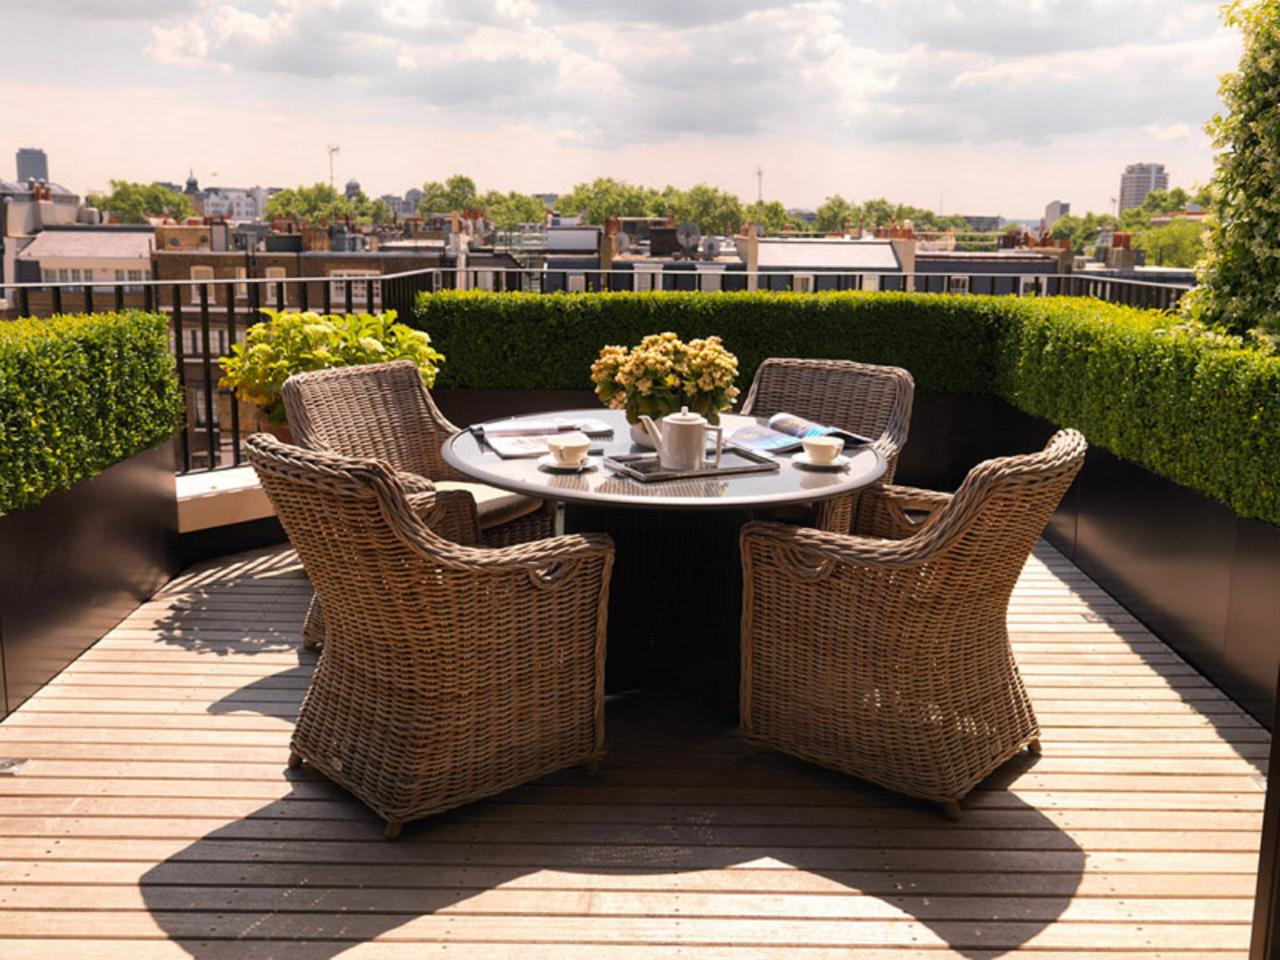 Urban Dining Deck terrace furniture with privacy hedges and wicker chairs PQZMFFC